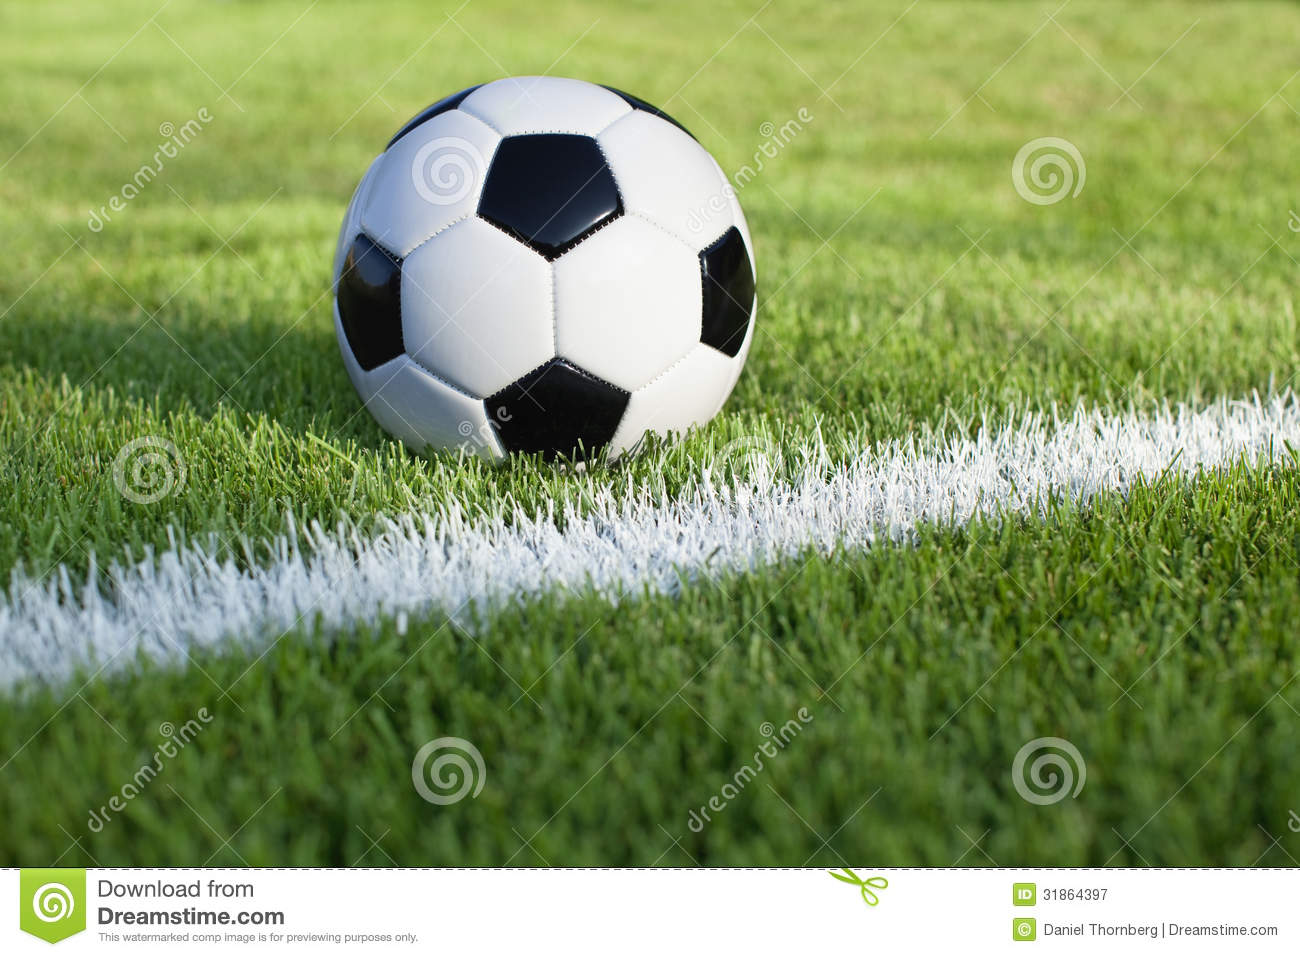 Soccer ball sits on grass field with white stripe